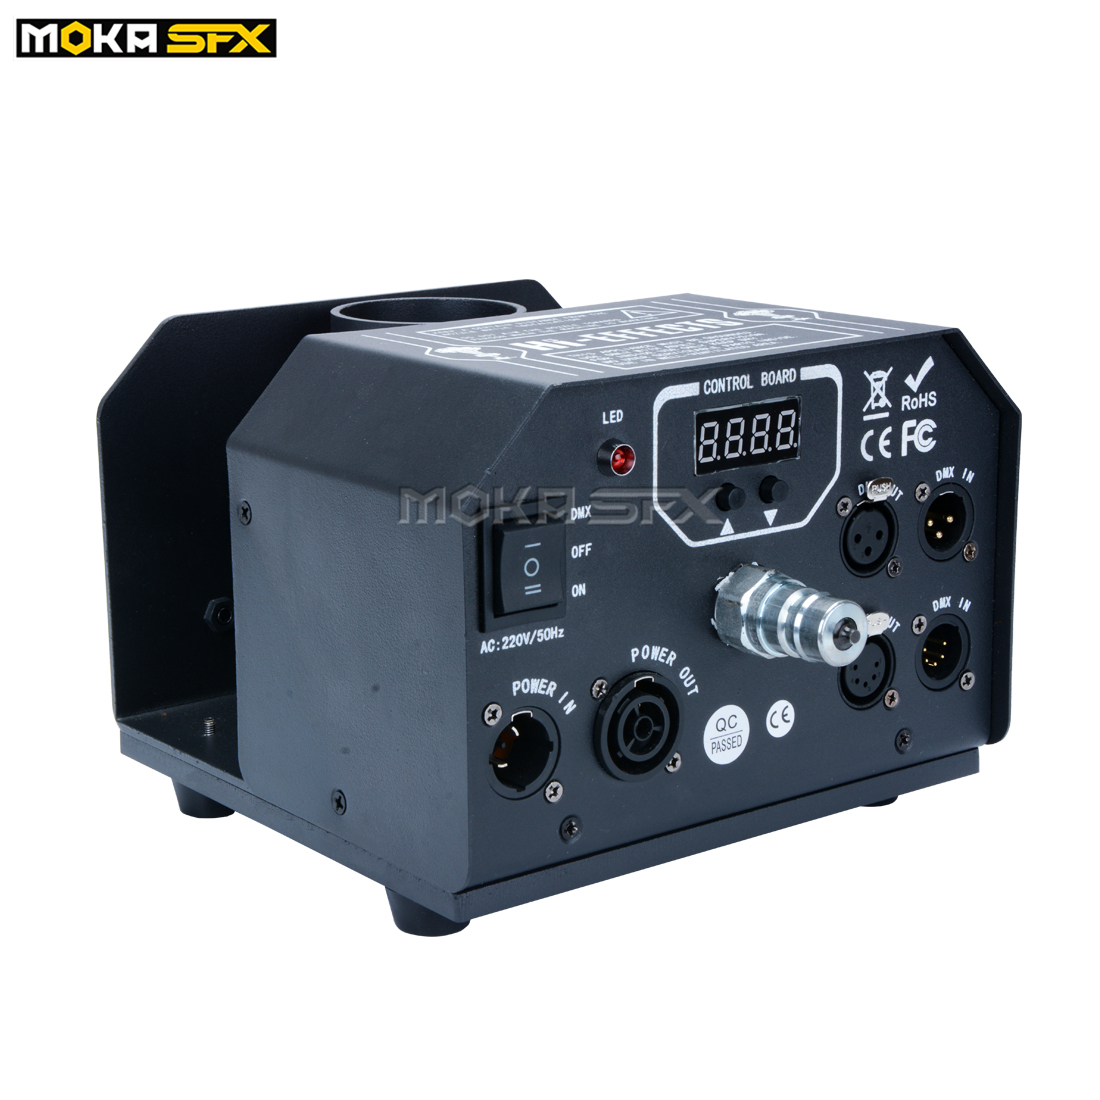 180 Degree Moving Head CO2 Jet Connon DMX Co2 Jet Machine No Ice Shoot 15m With Safe Channel